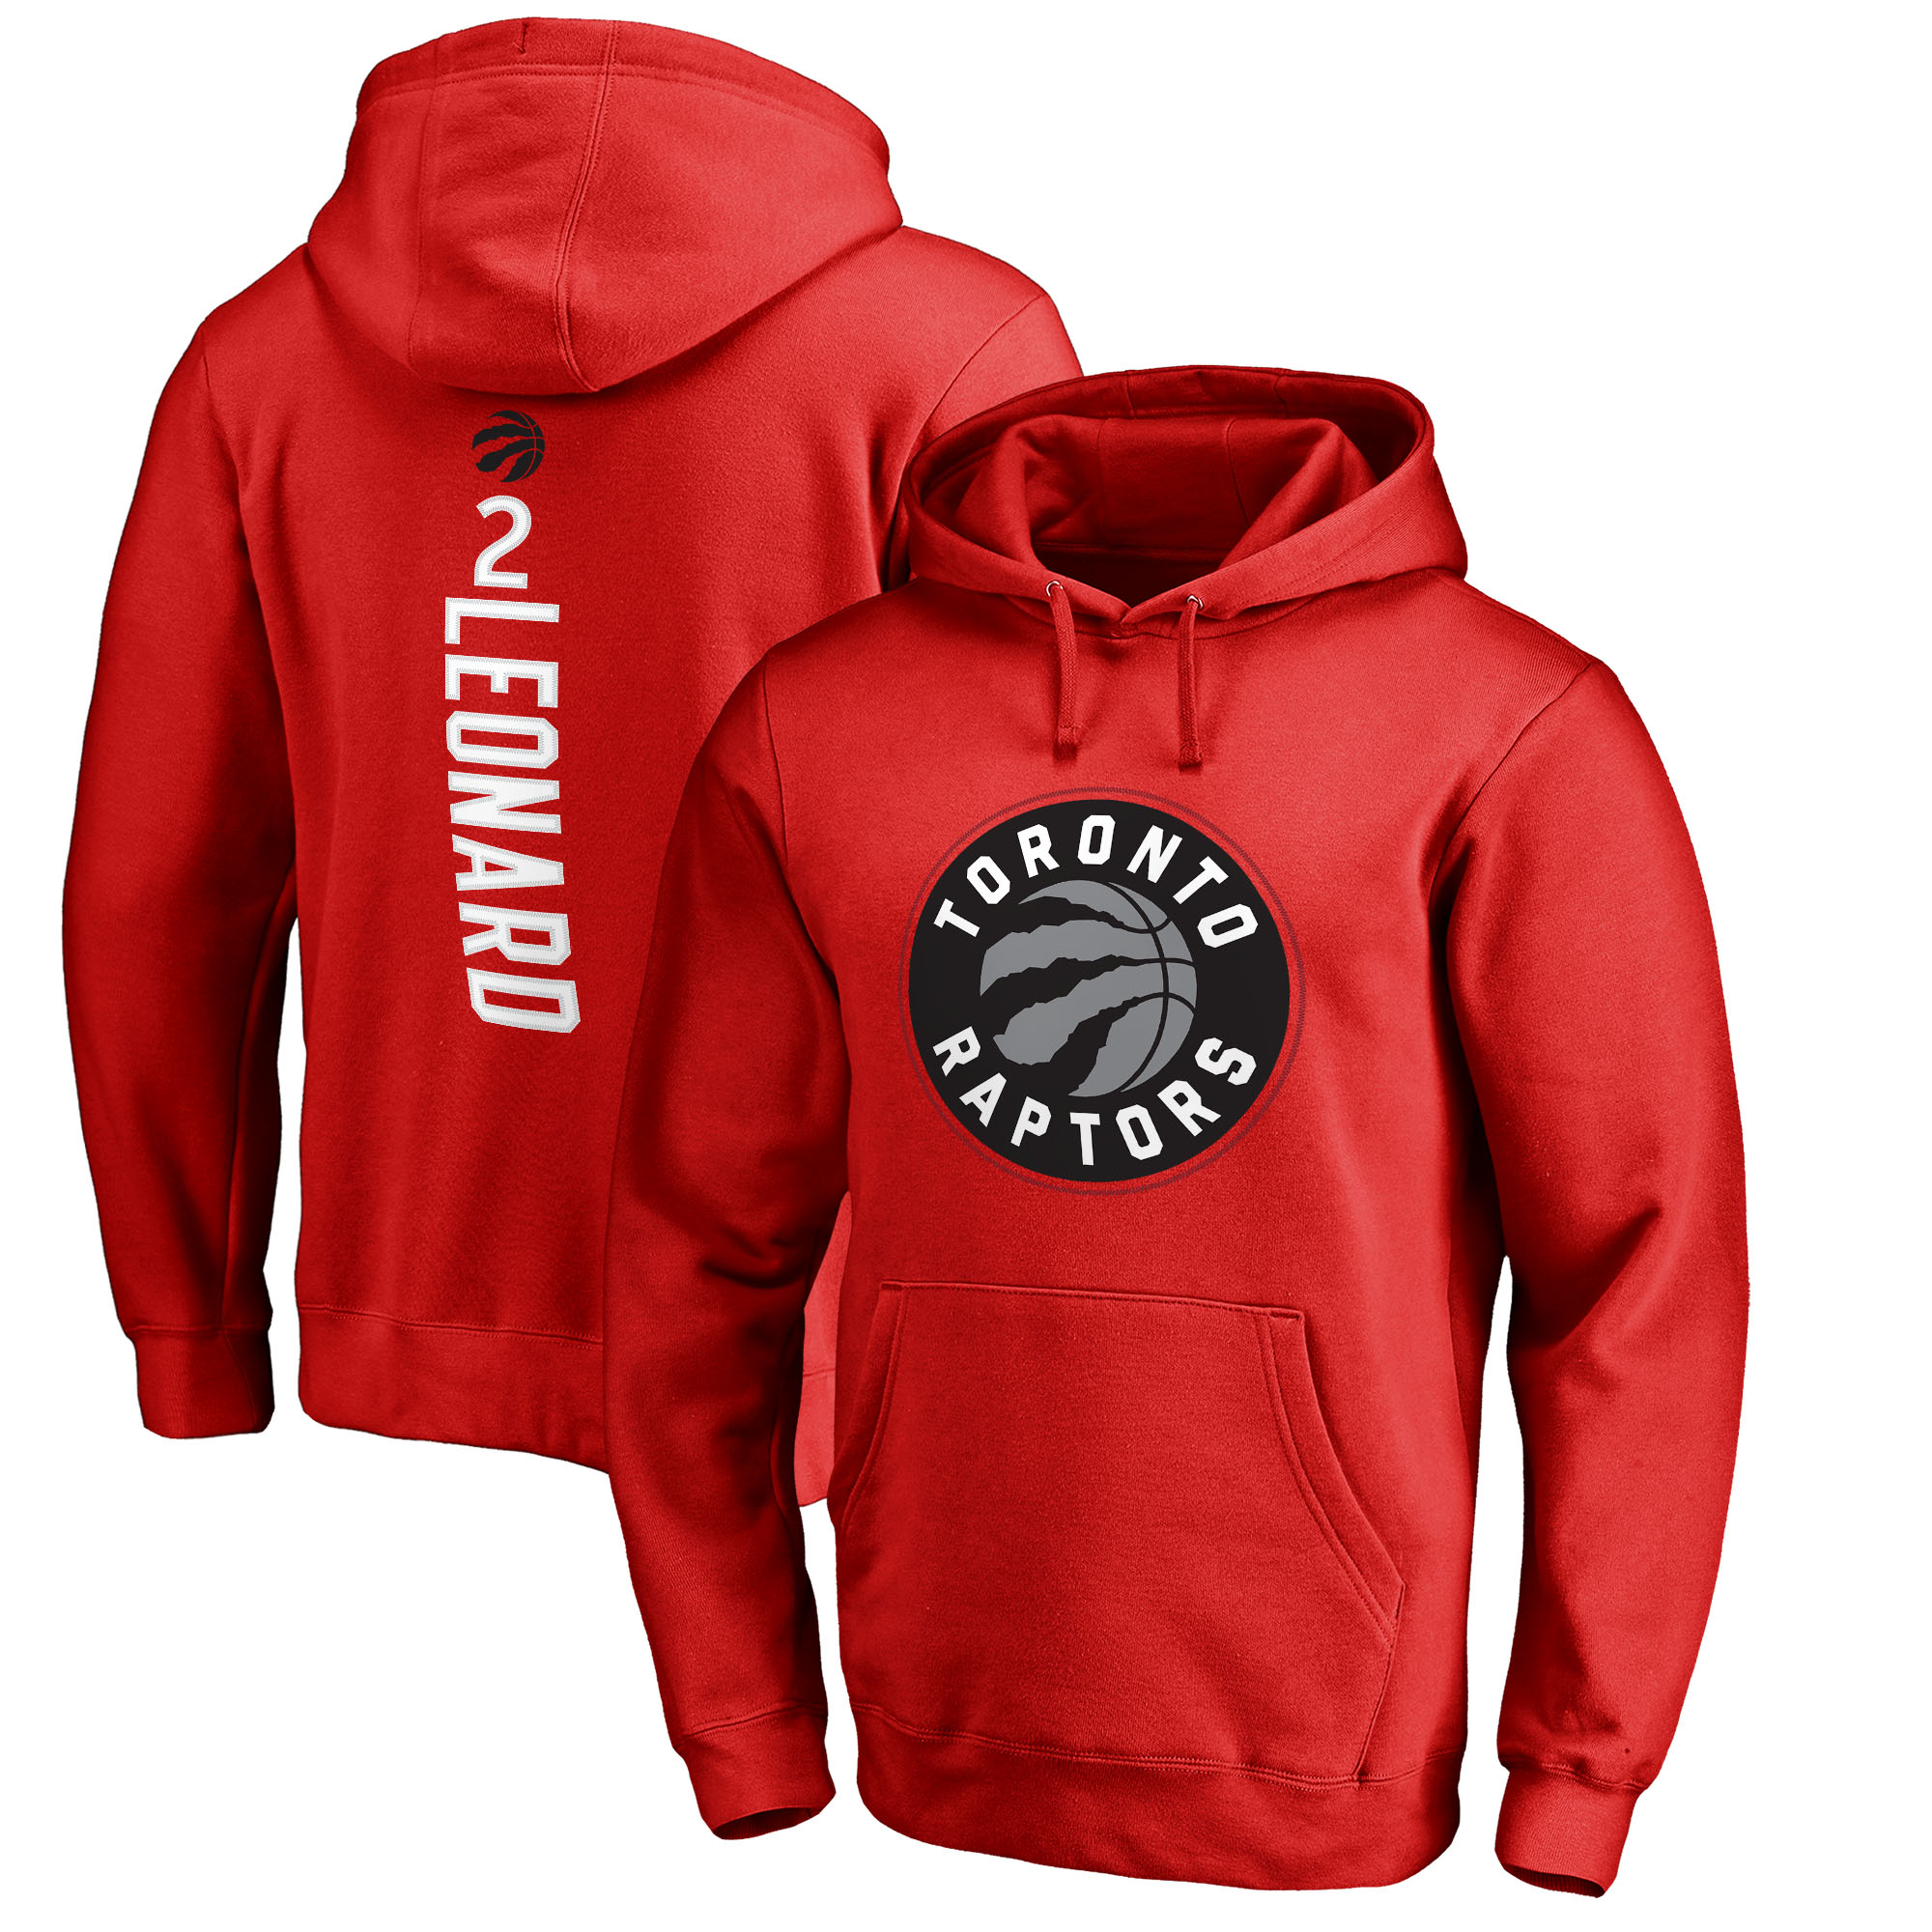 Kawhi Leonard Toronto Raptors Fanatics Branded Team Backer Name & Number Pullover Hoodie - Red